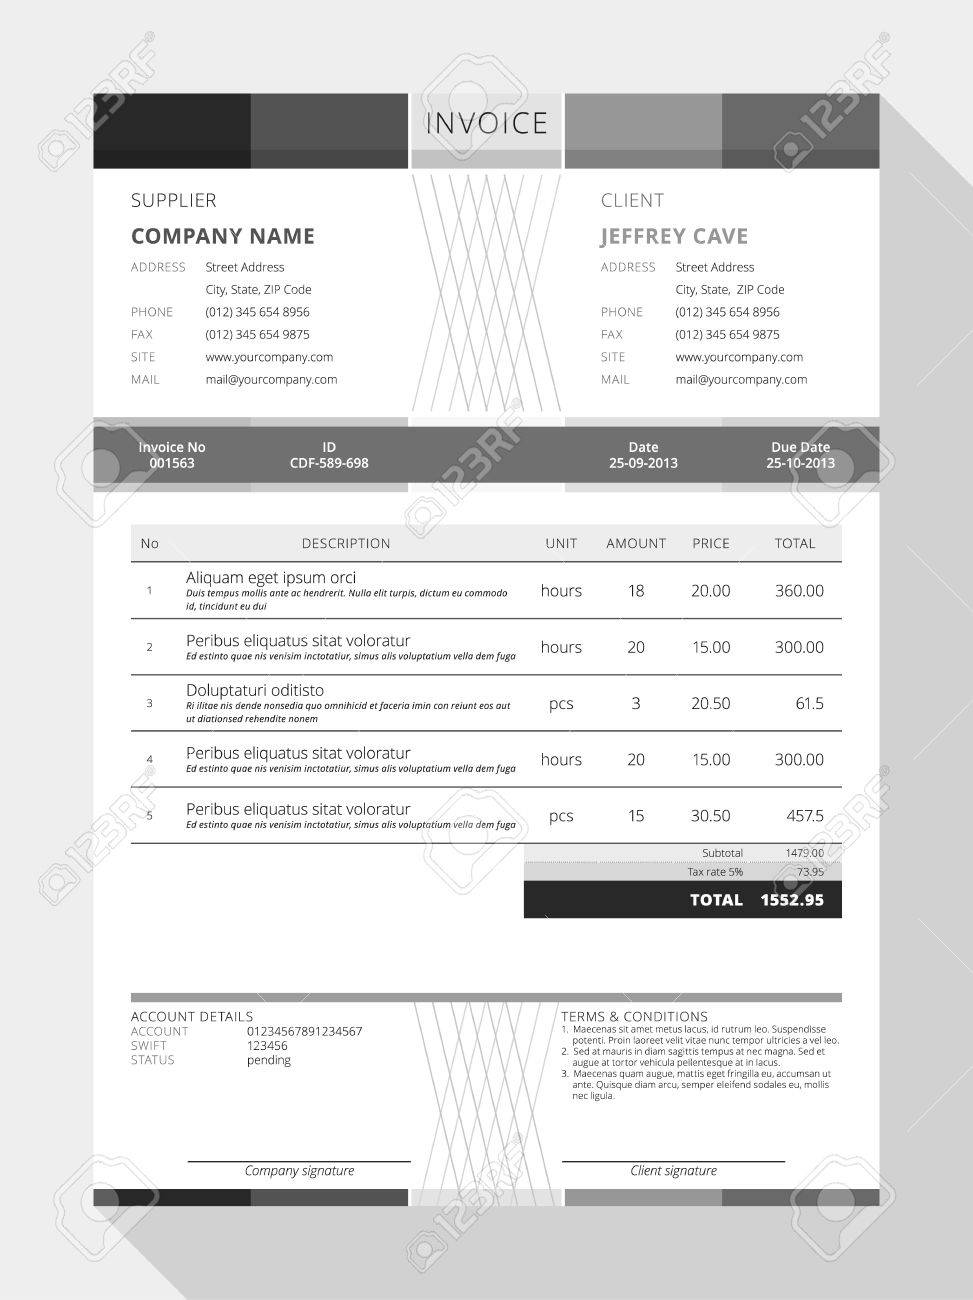 Opportunitycaus  Pleasant Design An Invoice  Professional Graphic Design Invoice  With Fair Vector Customizable Invoice Form Template Design Vector   Design An Invoice With Adorable Form I  Receipt Notice Also New Mexico Gross Receipts Tax In Addition Show Me The Receipts Gif And How Do You Spell Receipts As Well As How To Confirm Receipt Of Email Additionally Tax Receipt From Happytomco With Opportunitycaus  Fair Design An Invoice  Professional Graphic Design Invoice  With Adorable Vector Customizable Invoice Form Template Design Vector   Design An Invoice And Pleasant Form I  Receipt Notice Also New Mexico Gross Receipts Tax In Addition Show Me The Receipts Gif From Happytomco